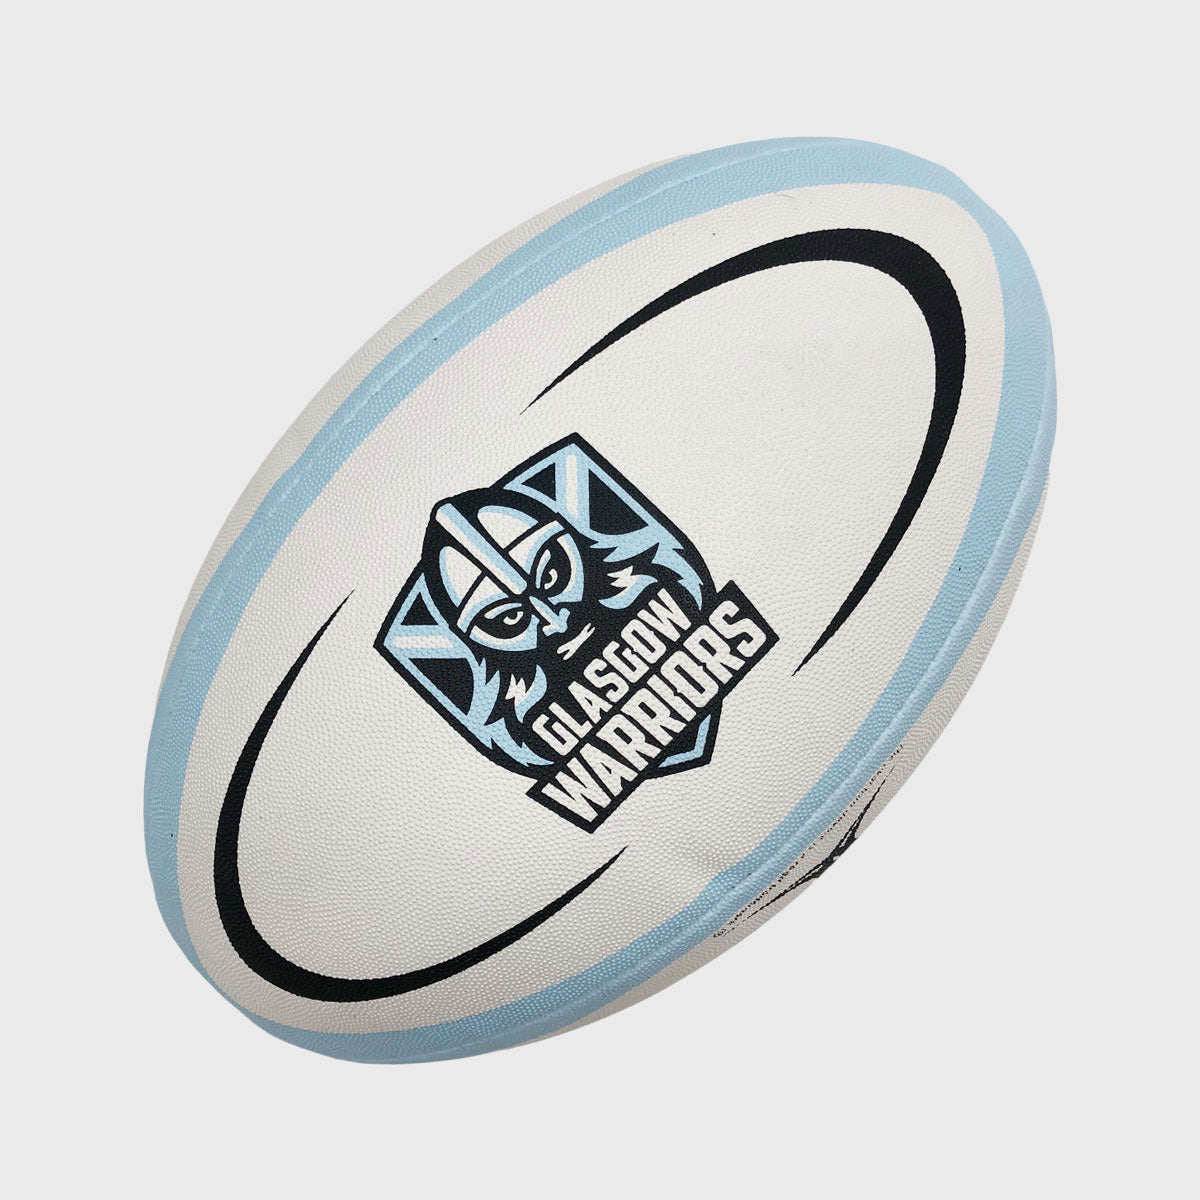 Glasgow Warriors Replica Midi Rugby Ball 2019/20 - First XV rugbystuff.com